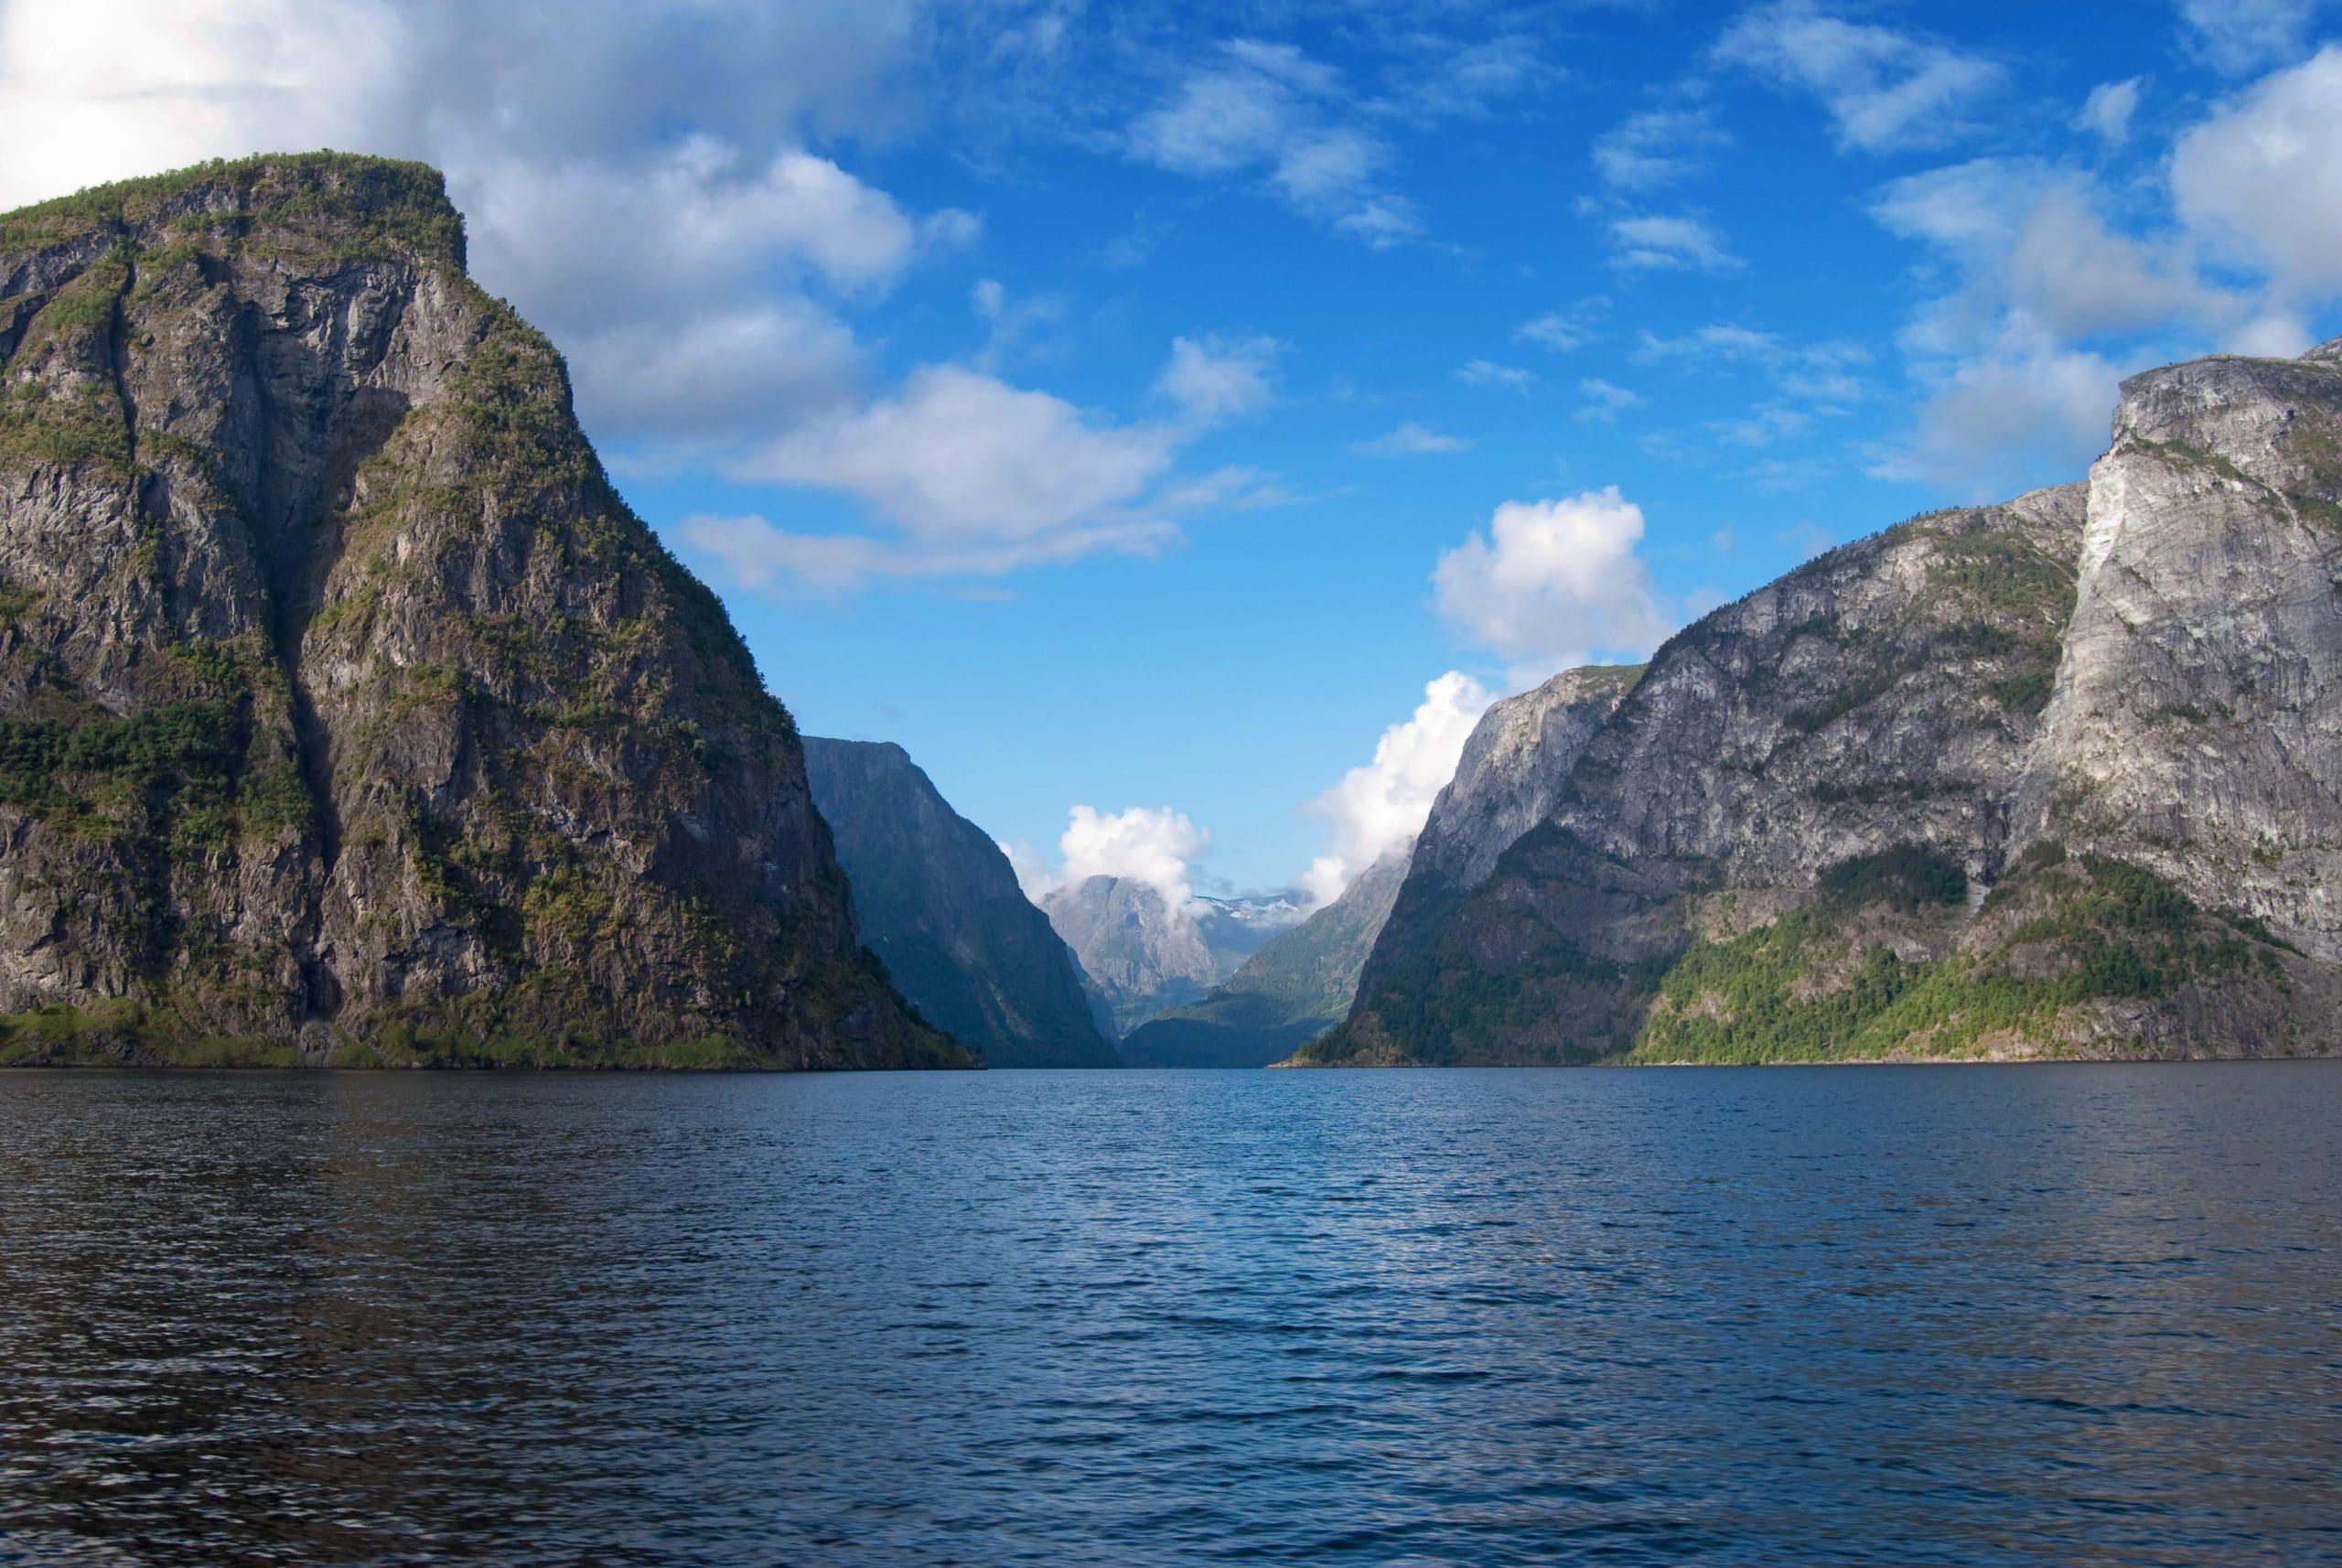 Fjords | gateways to mystery | Norway